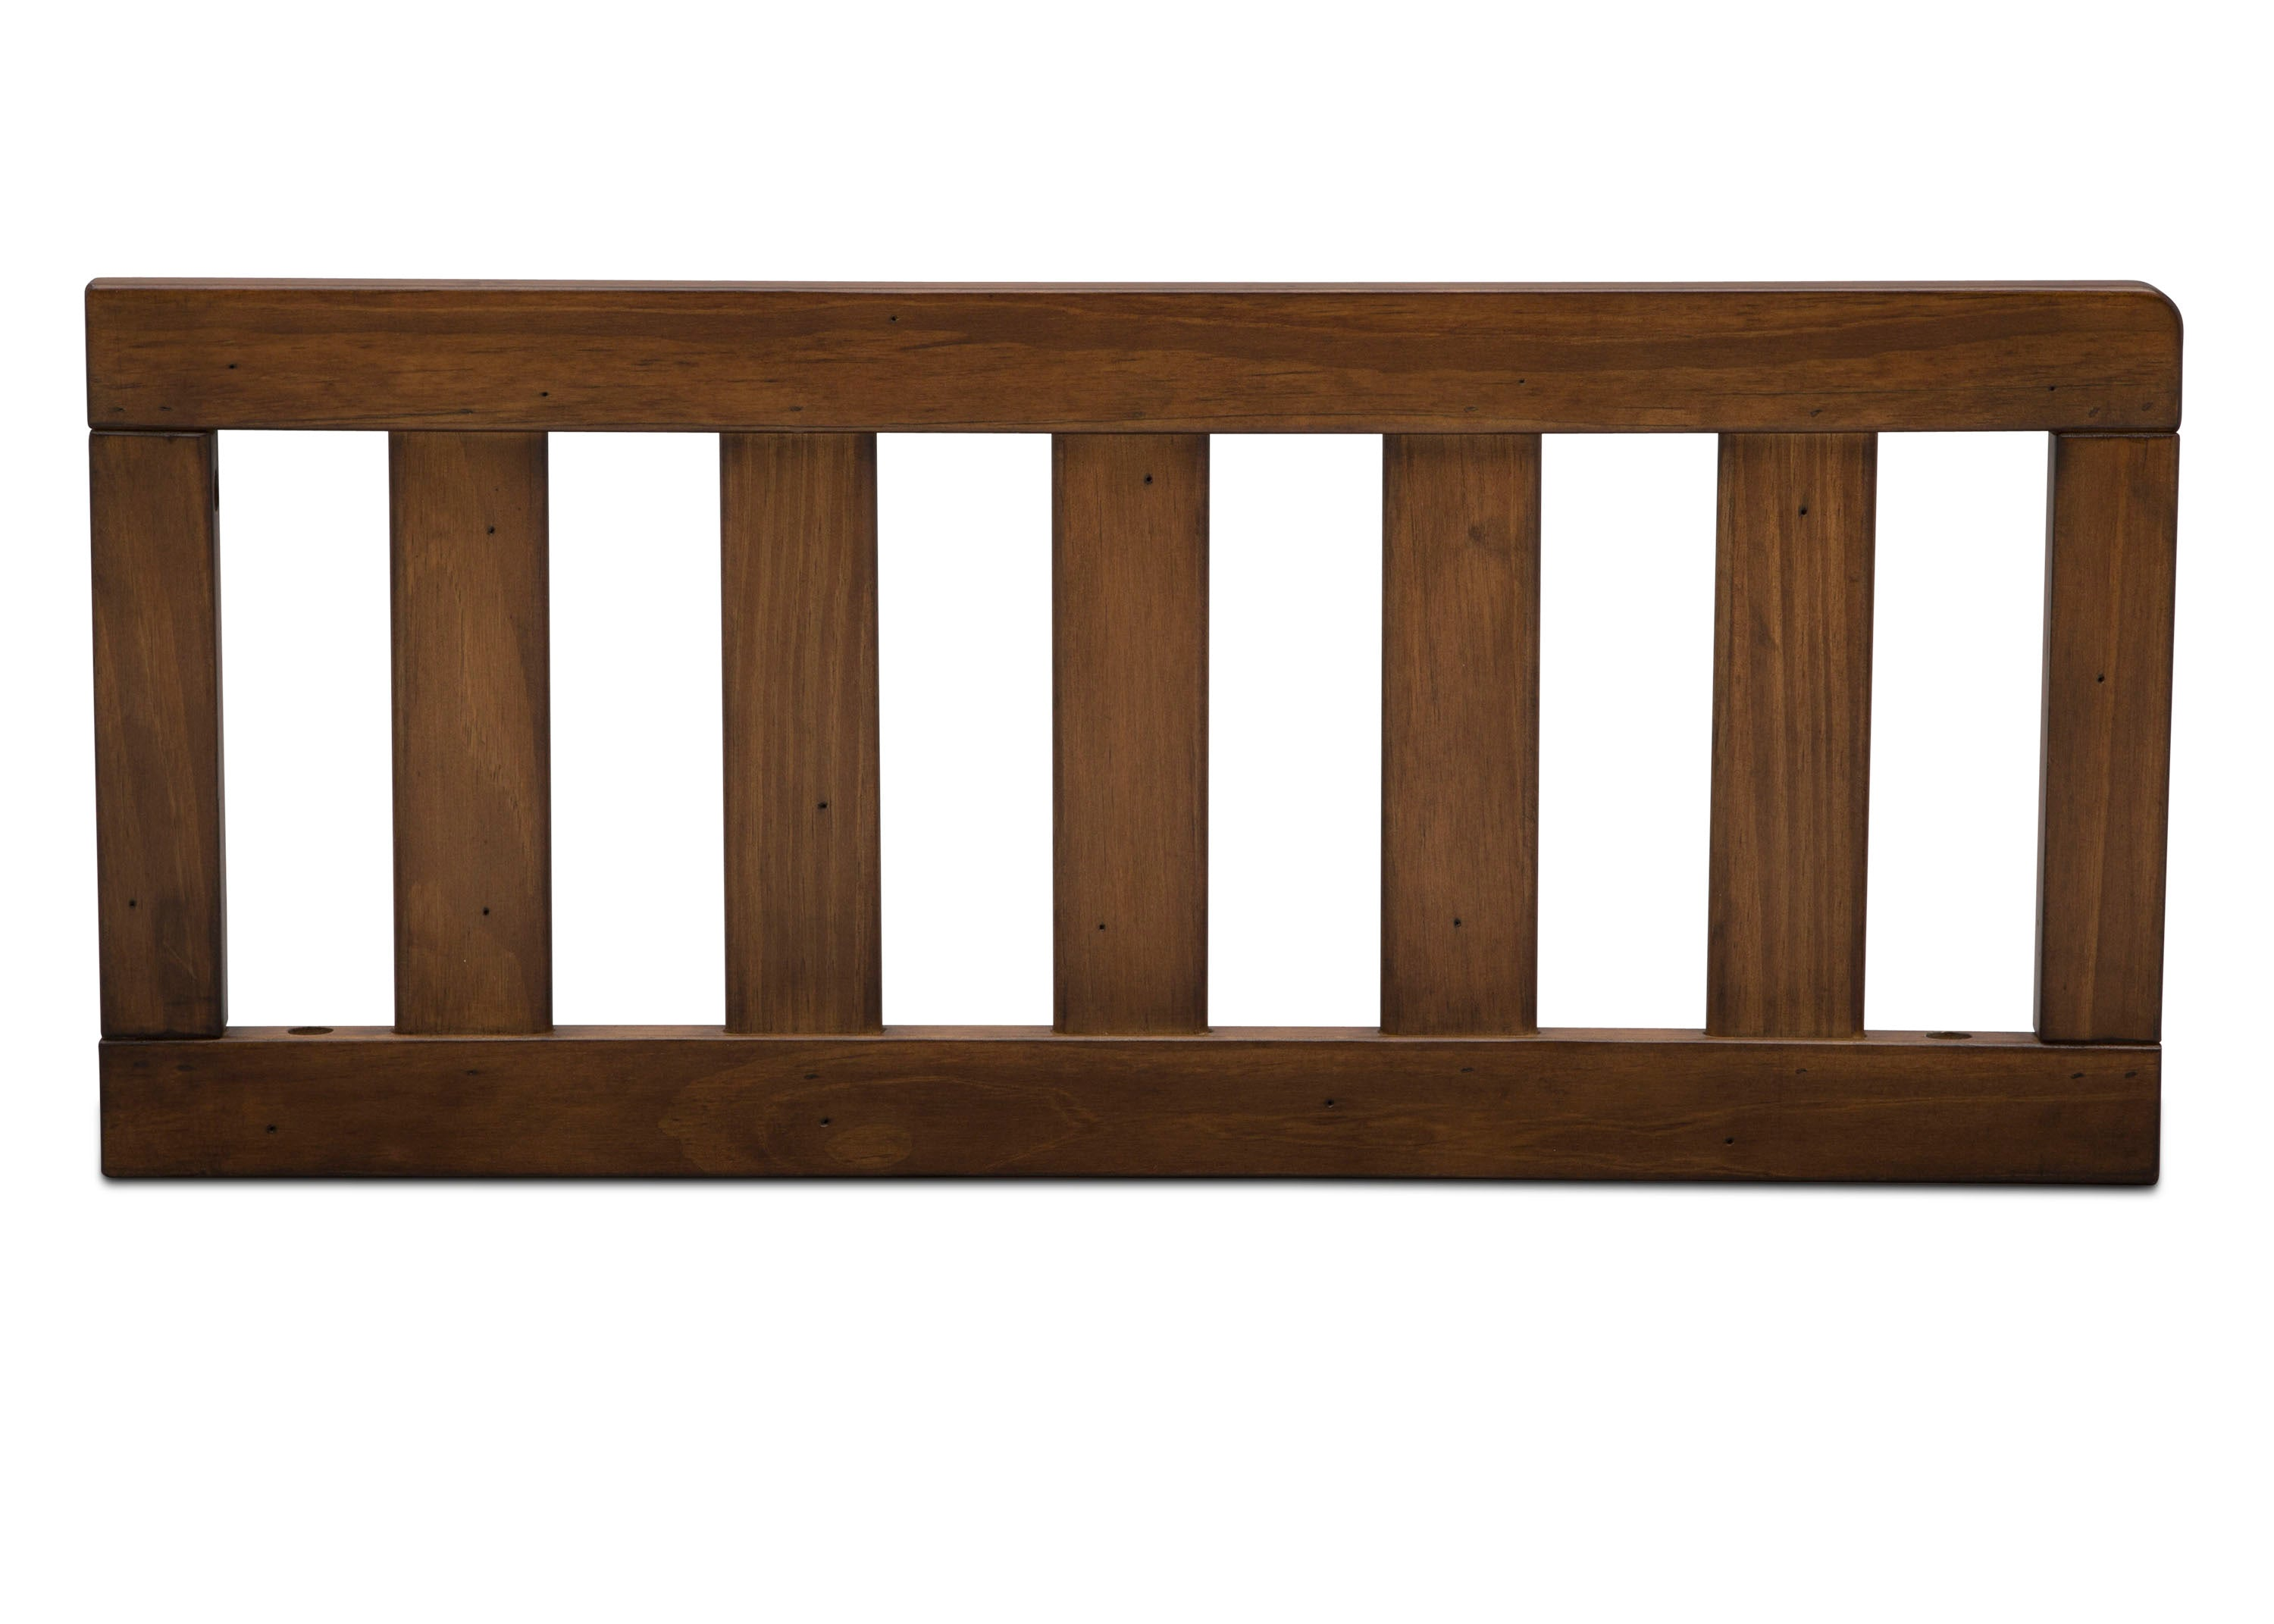 Delta Children Antique Chestnut (2100) Toddler Guardrail (180130) Front Silo, c1c for Bristol 4-in-1 Convertible Crib